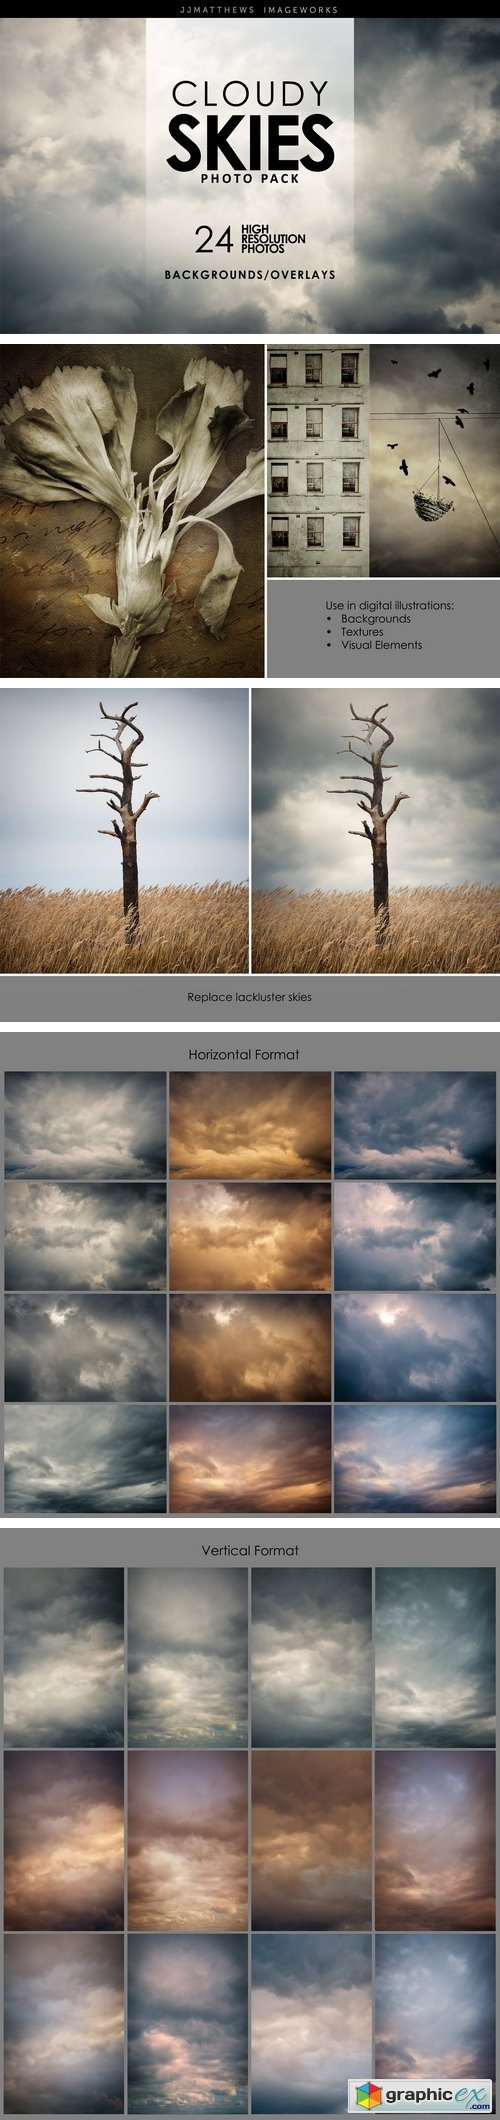 Cloudy Skies-Backgrounds & Overlays